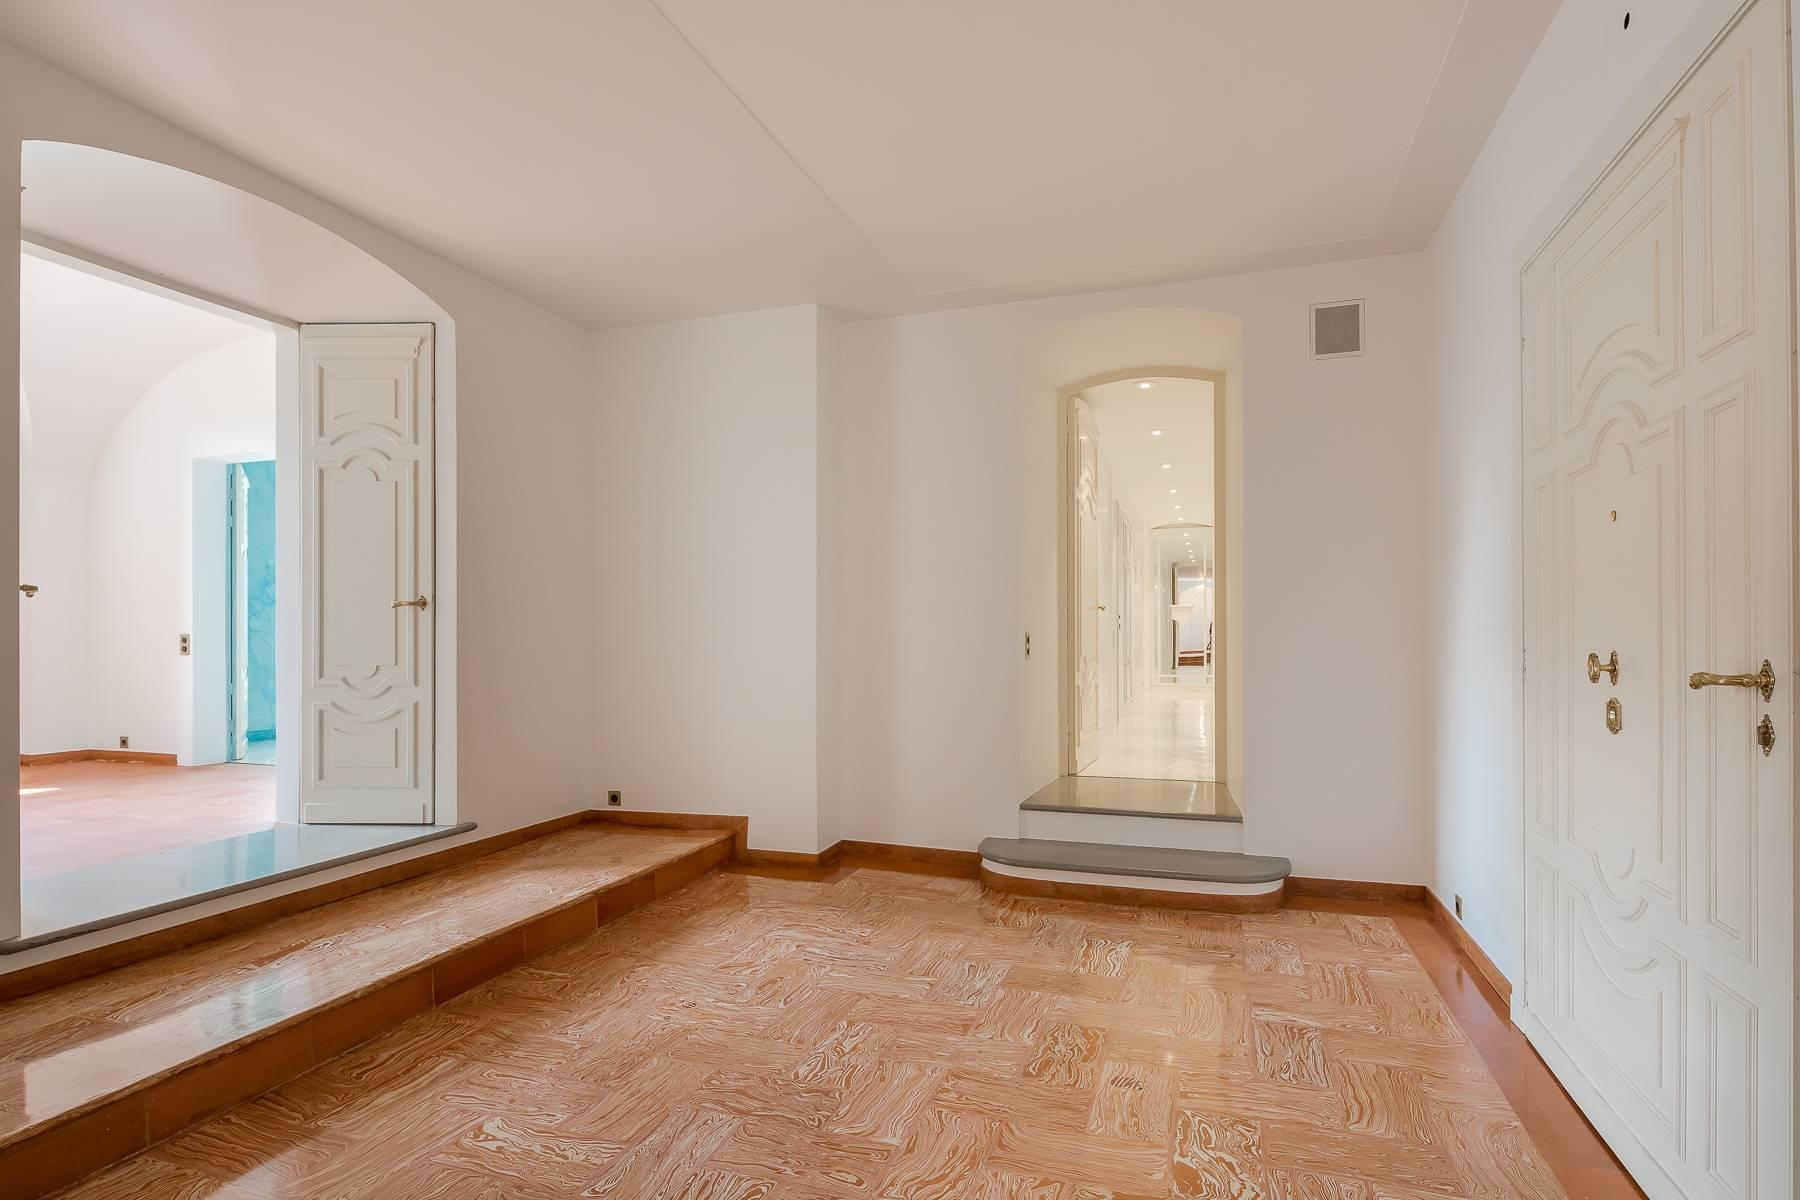 Inviting 482 sqm property with a view of the greenery in the XX Settembre / Tamburini area - 5